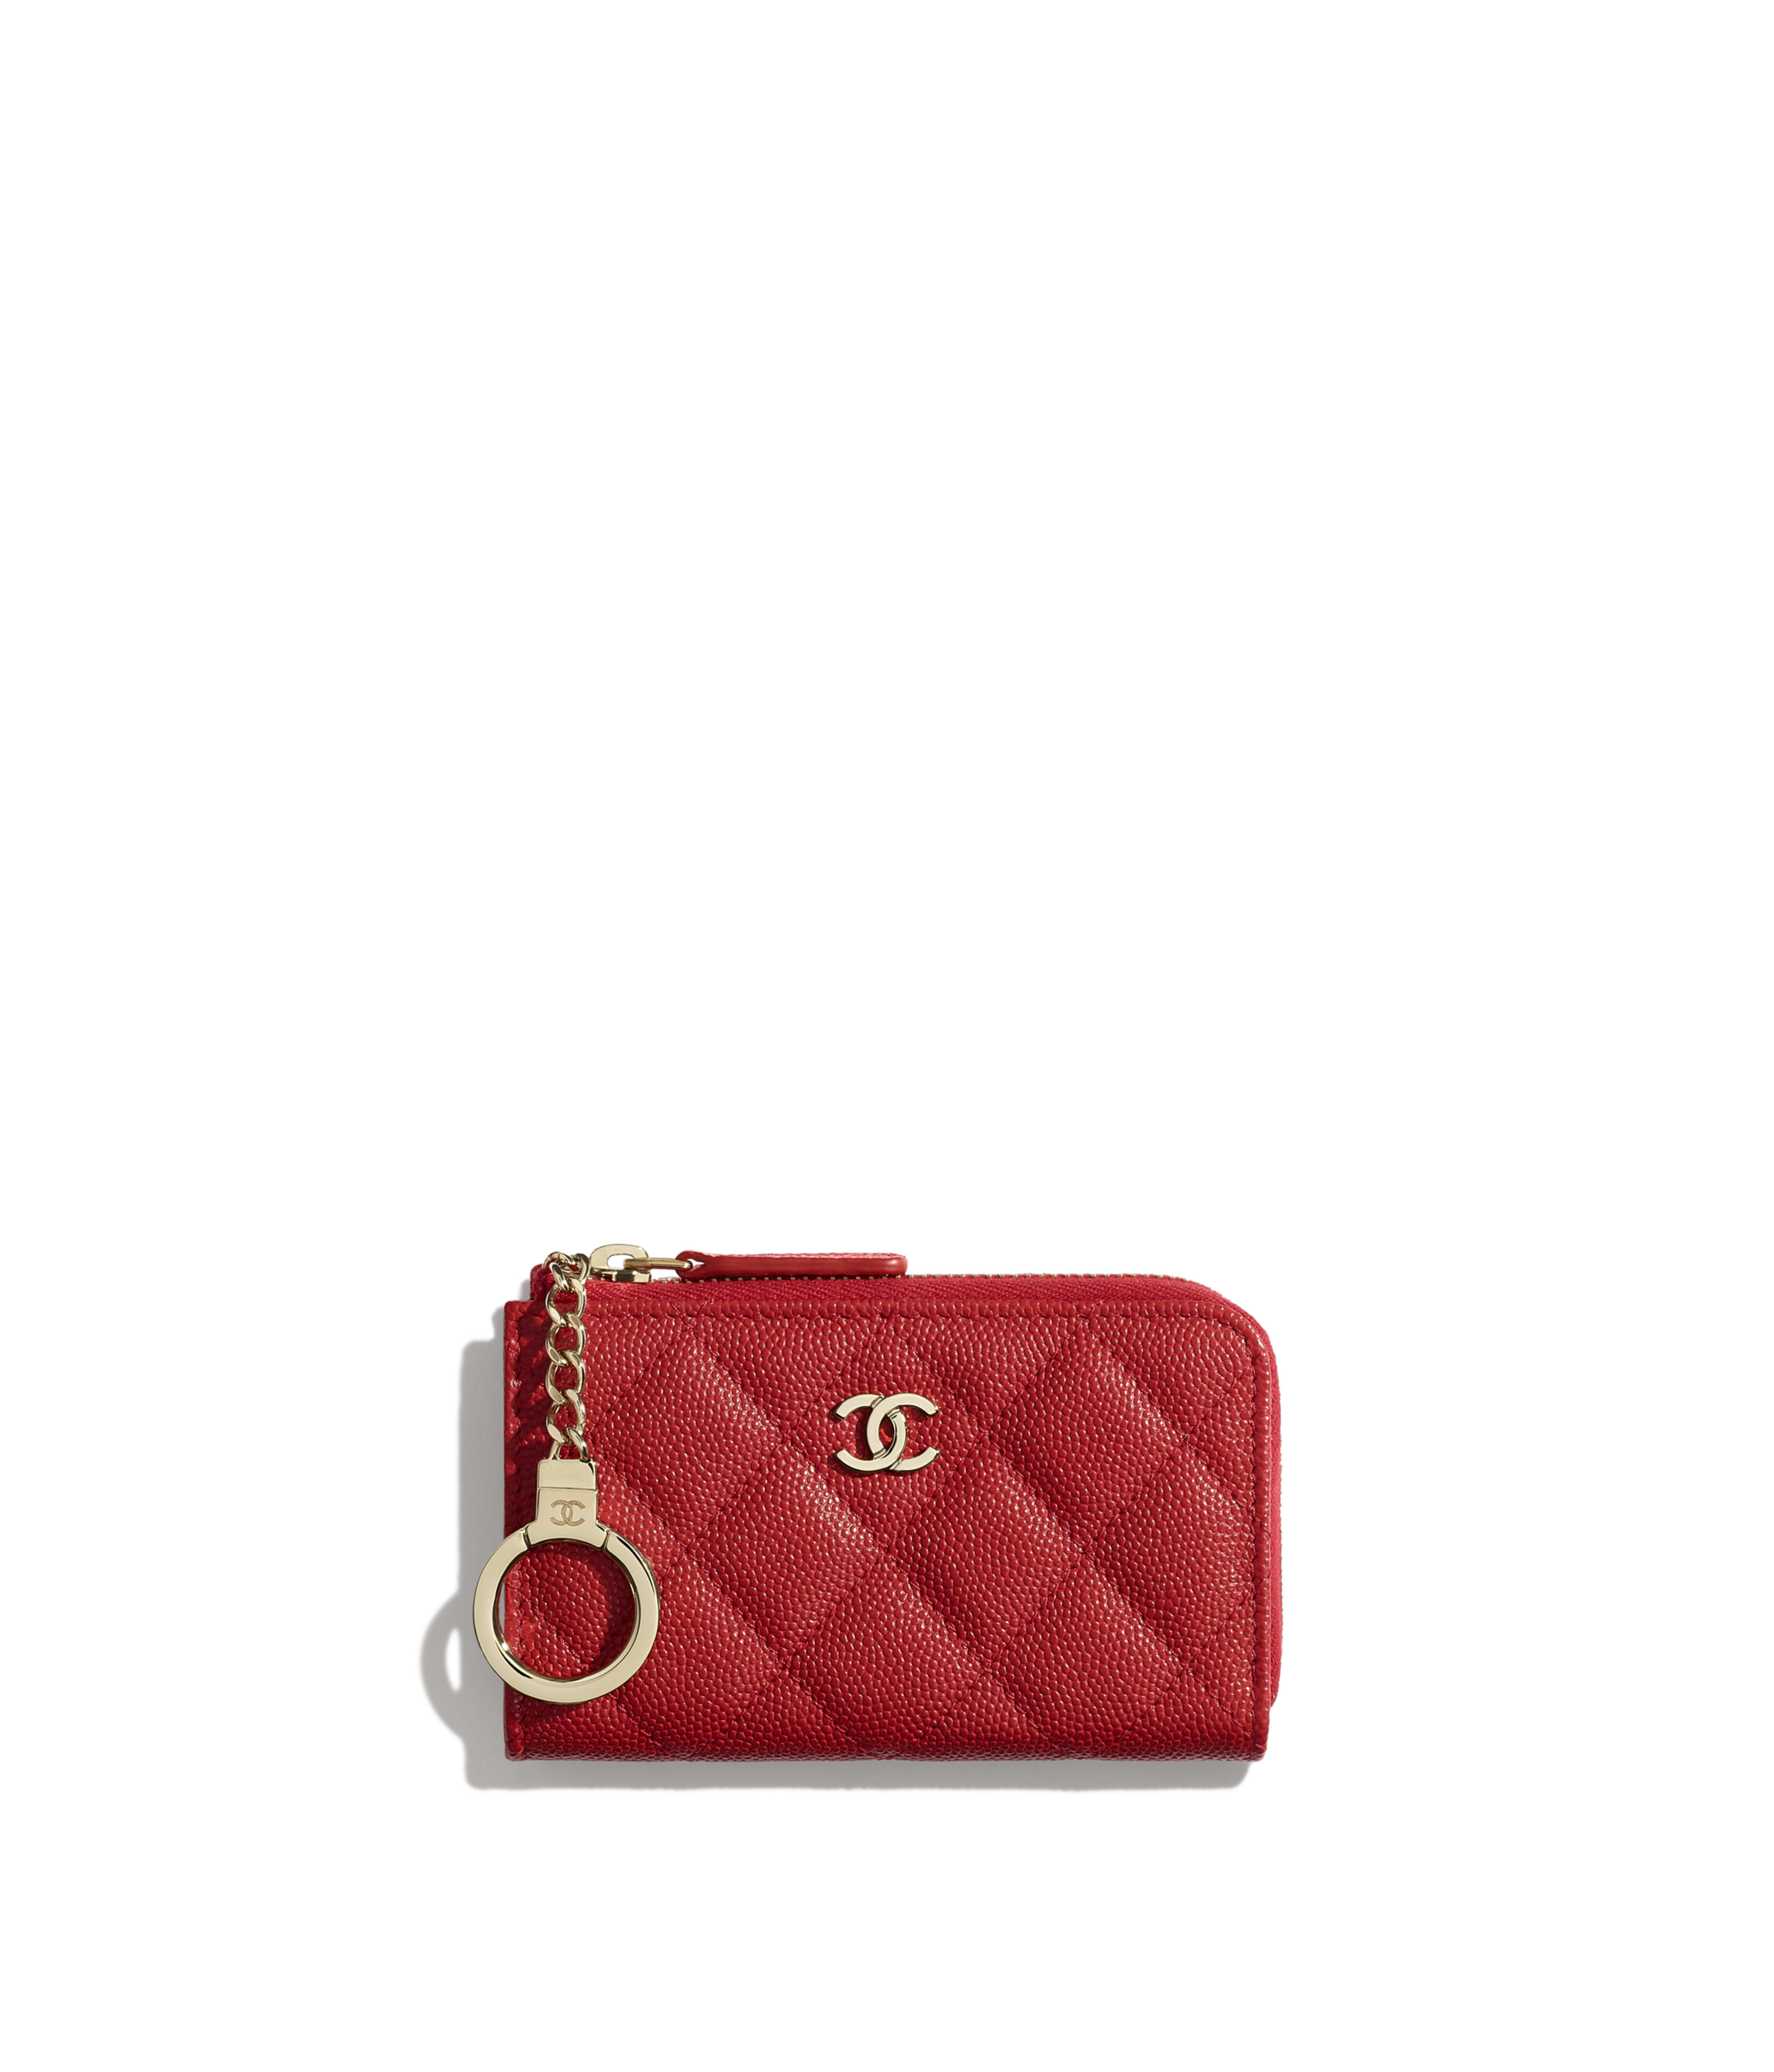 4e8c8b417823 Small leather goods - Fashion | CHANEL